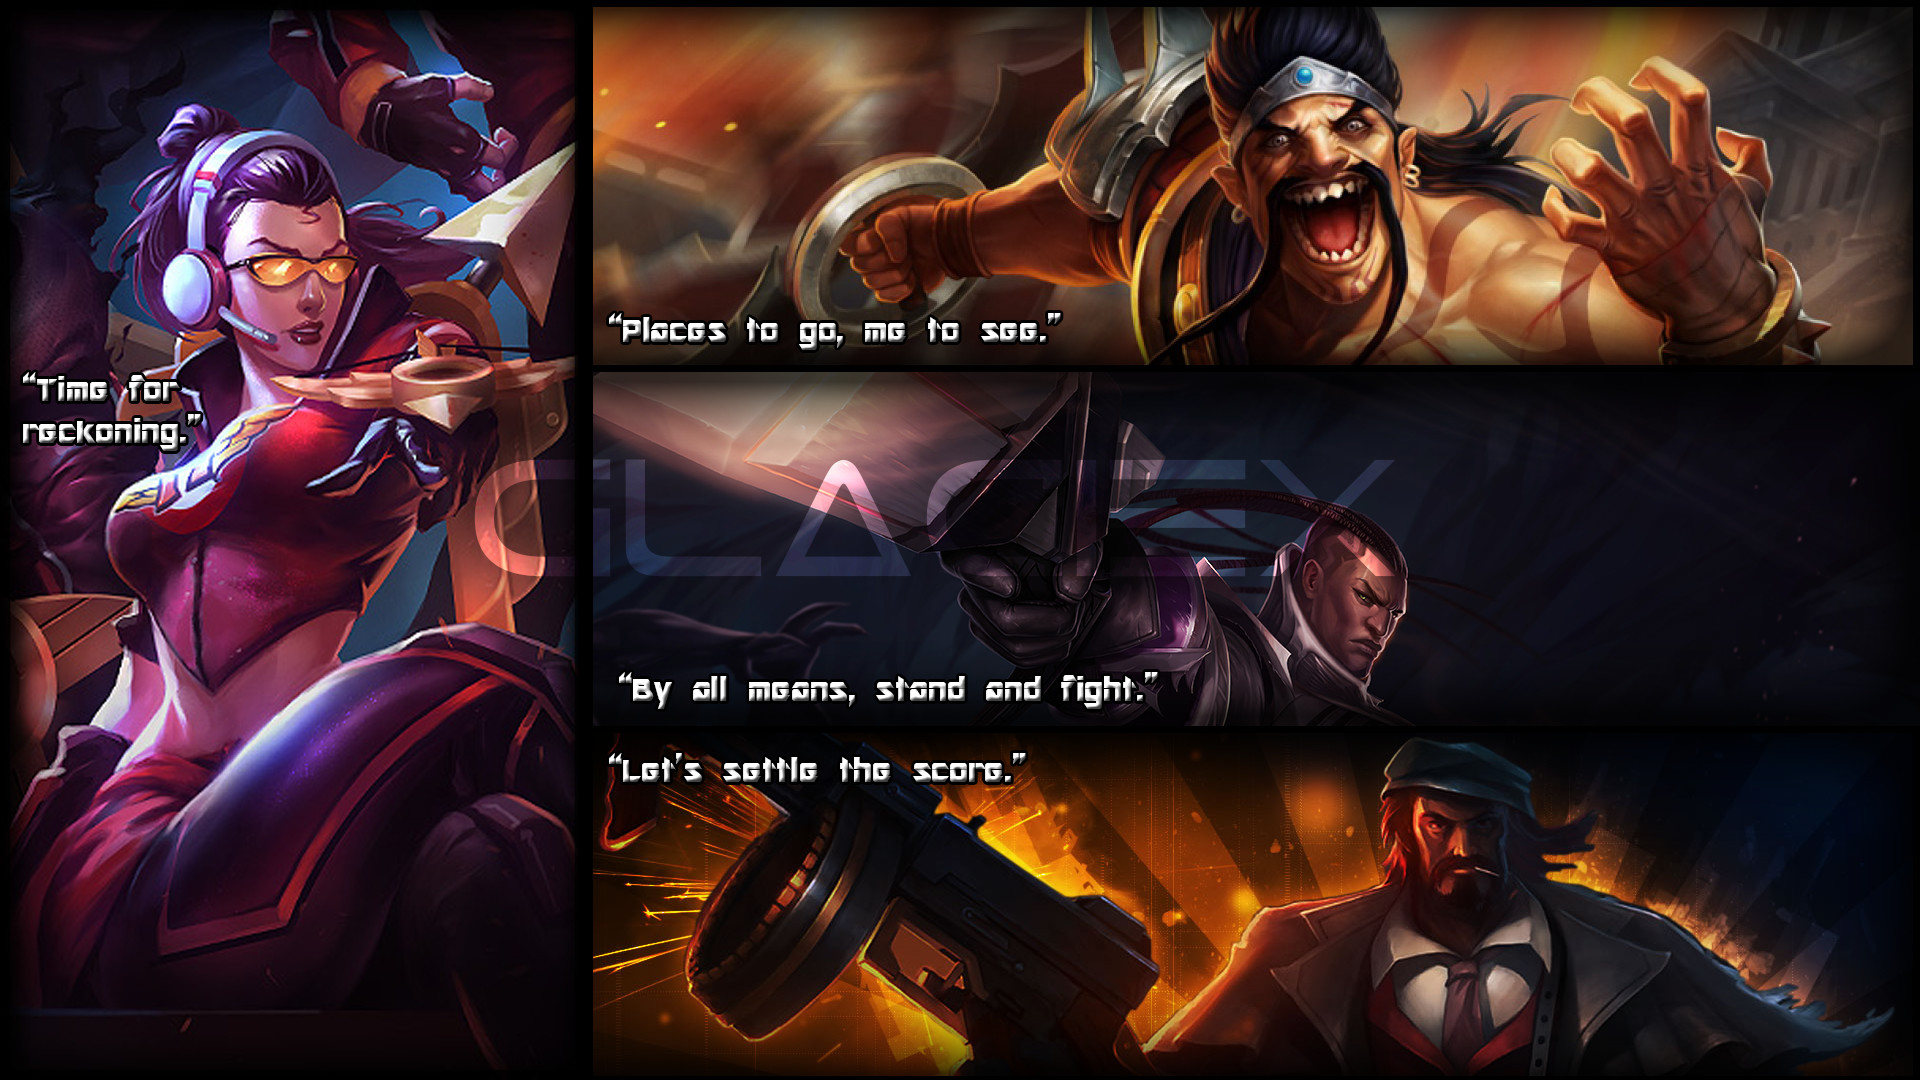 1920x1080 ... League of Legends - Vayne, Draven, Lucian, Graves by Glaciex